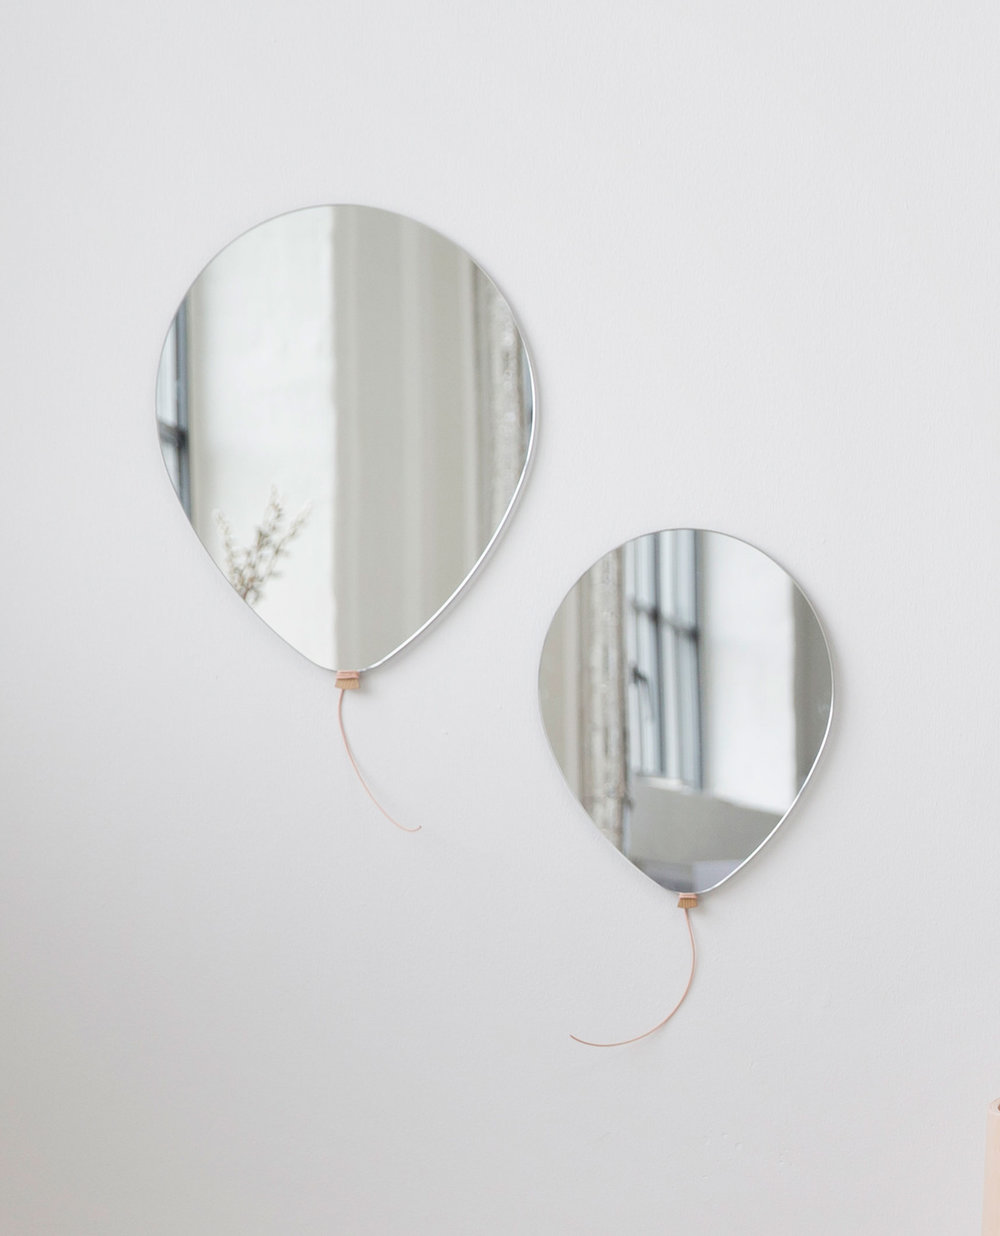 EO_Balloon-mirrors.jpg